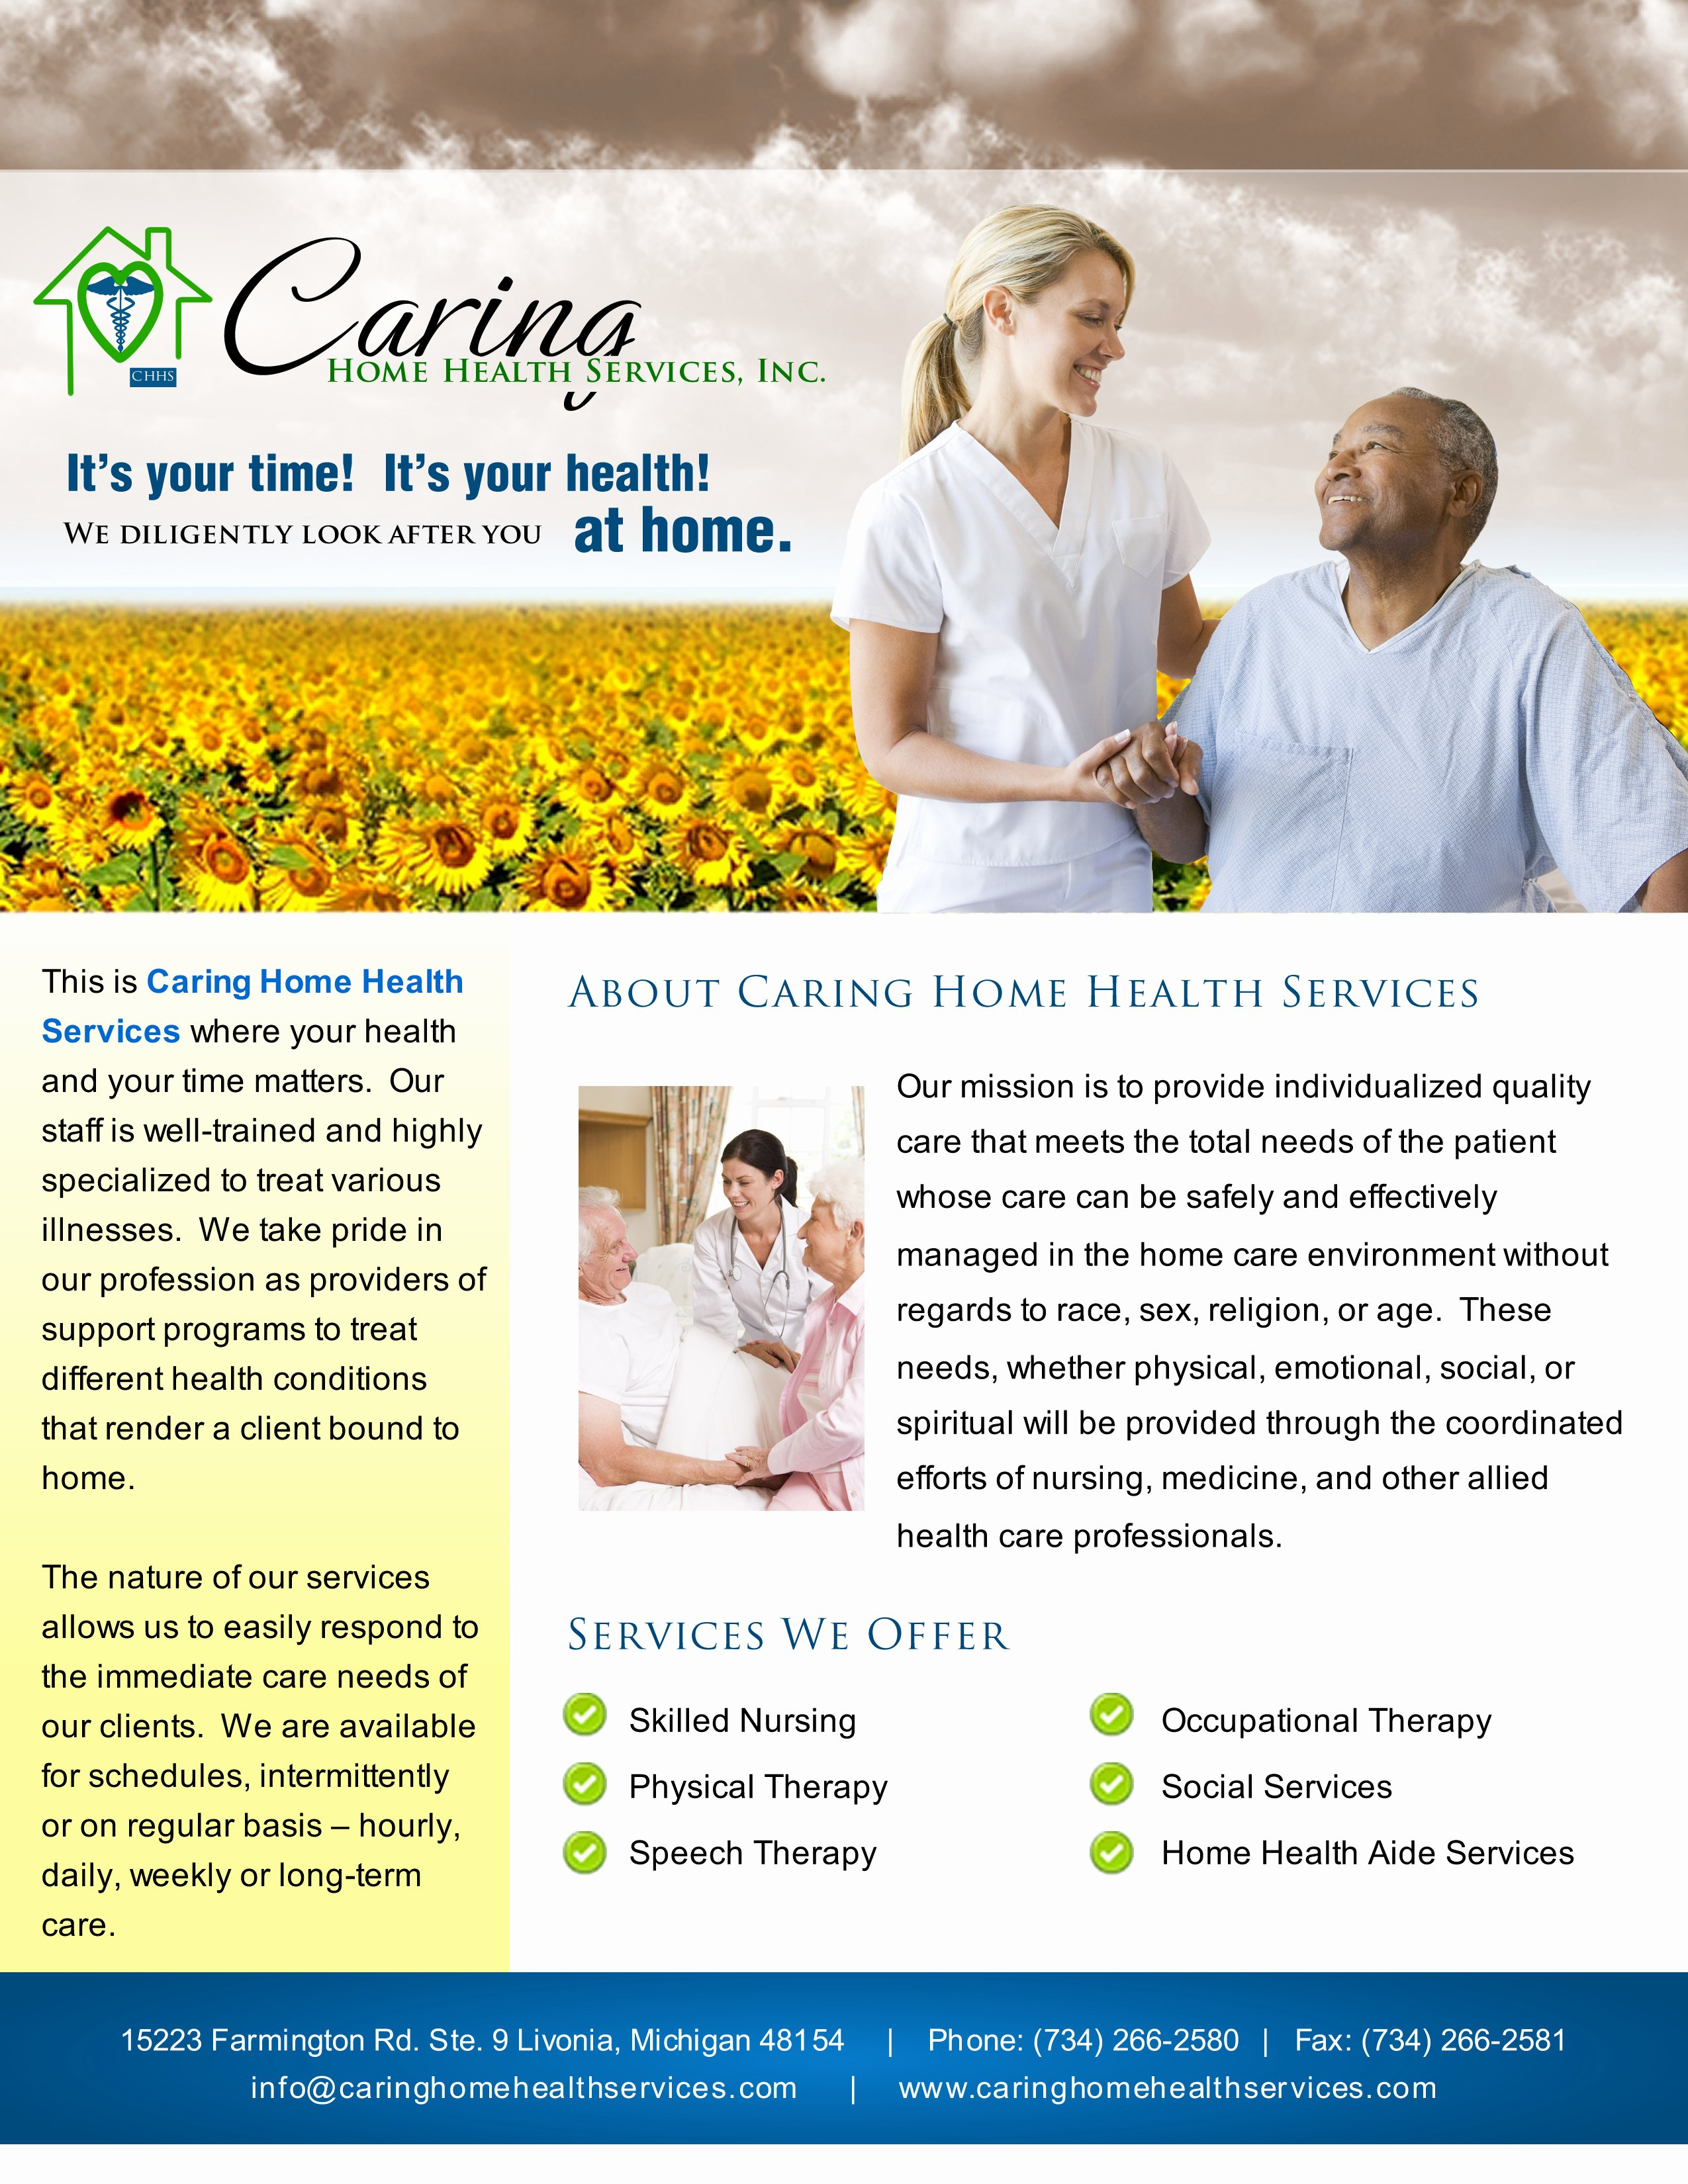 Home Health Care Flyers Luxury Flyer Design Gallery Category Page 5 Designtos